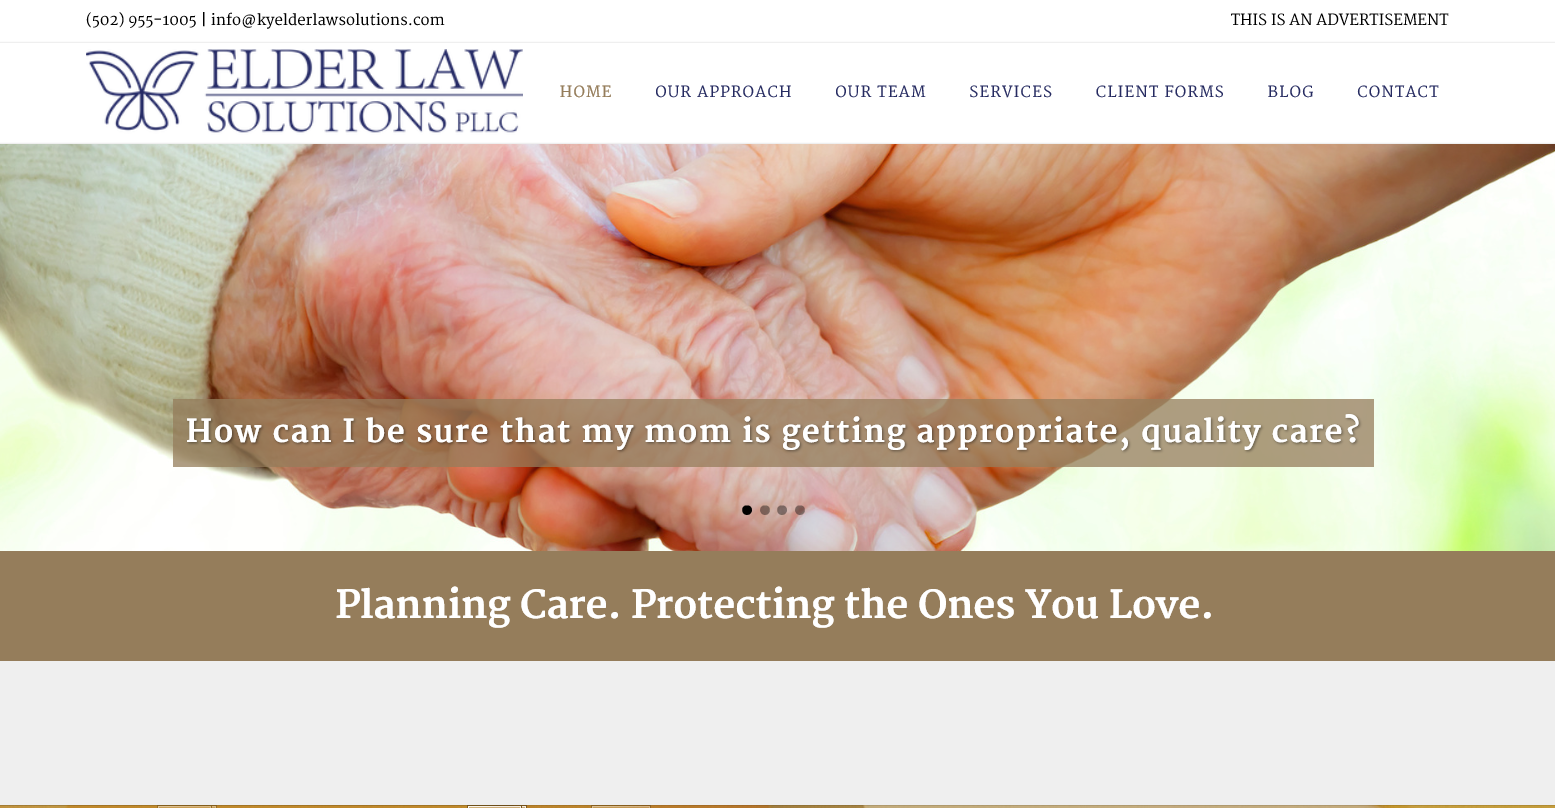 Kentucky Elder Law Solutions